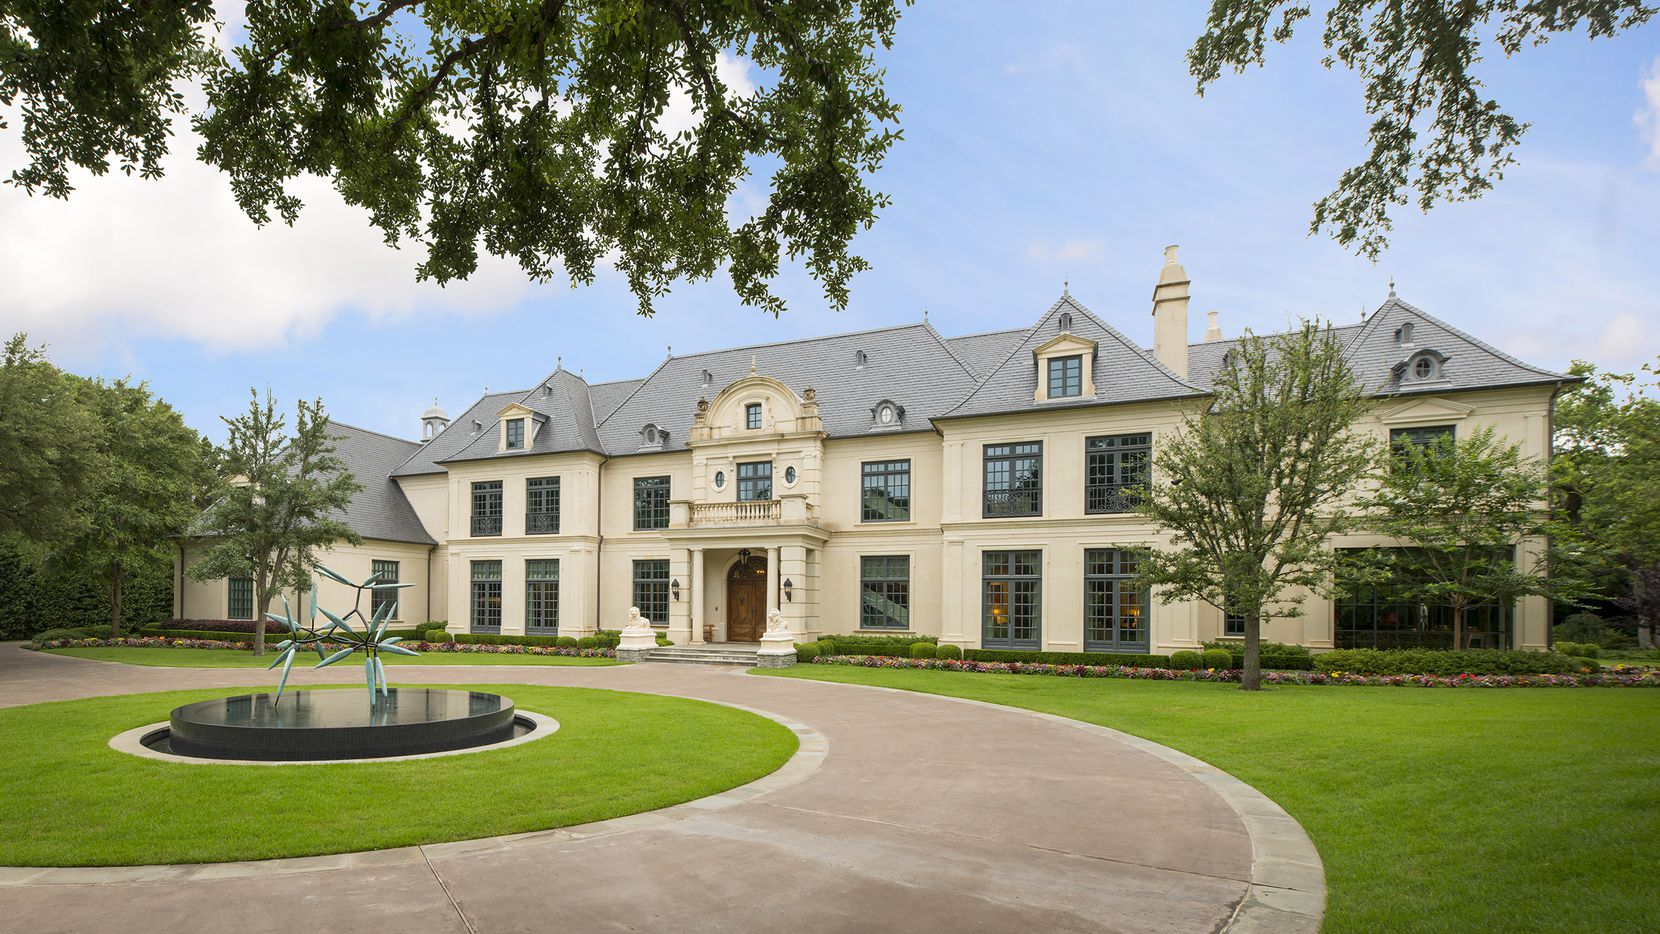 This 3-acre estate in Old Preston Hollow offers six bedrooms, a wine cellar, pool, tennis court, putting green and gardens.